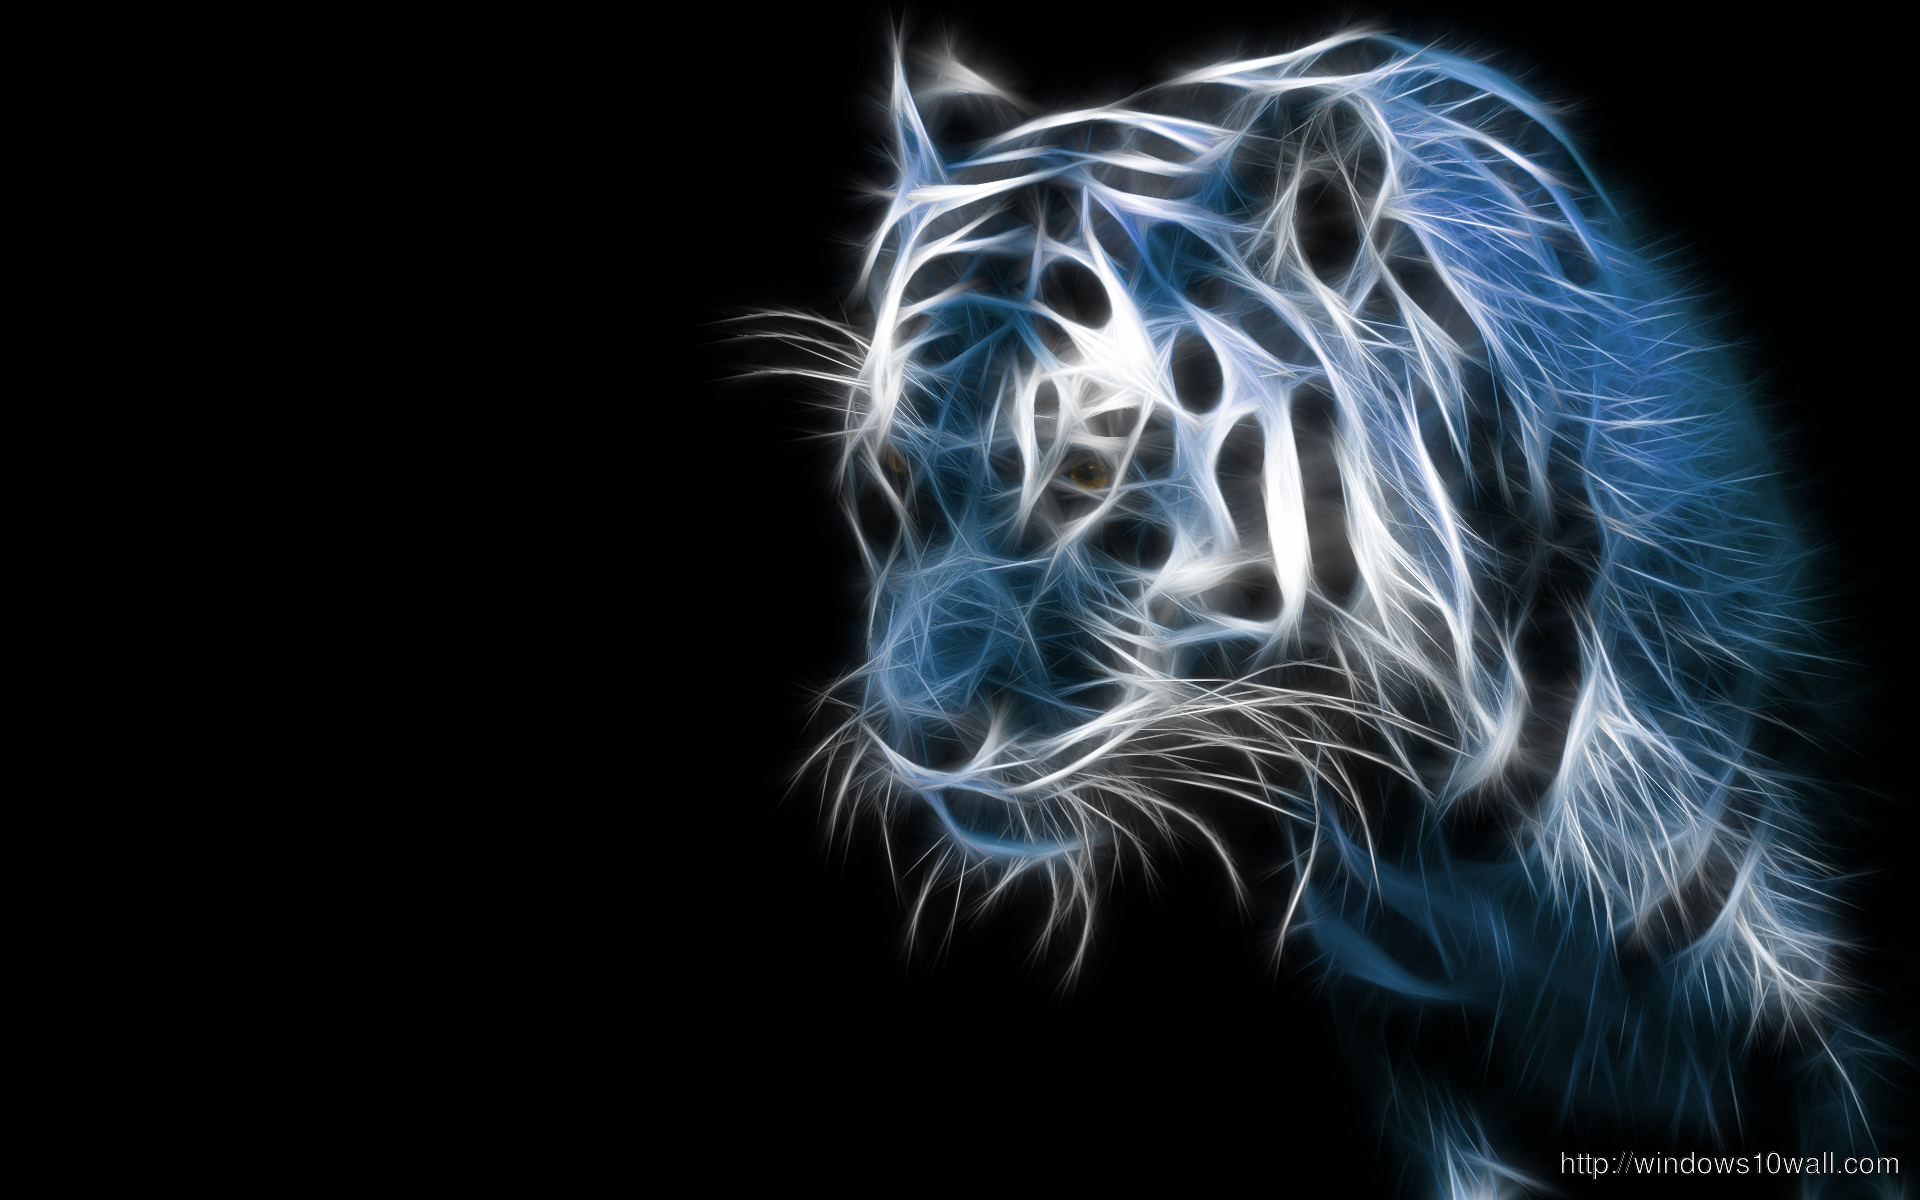 3D images Wallpapers